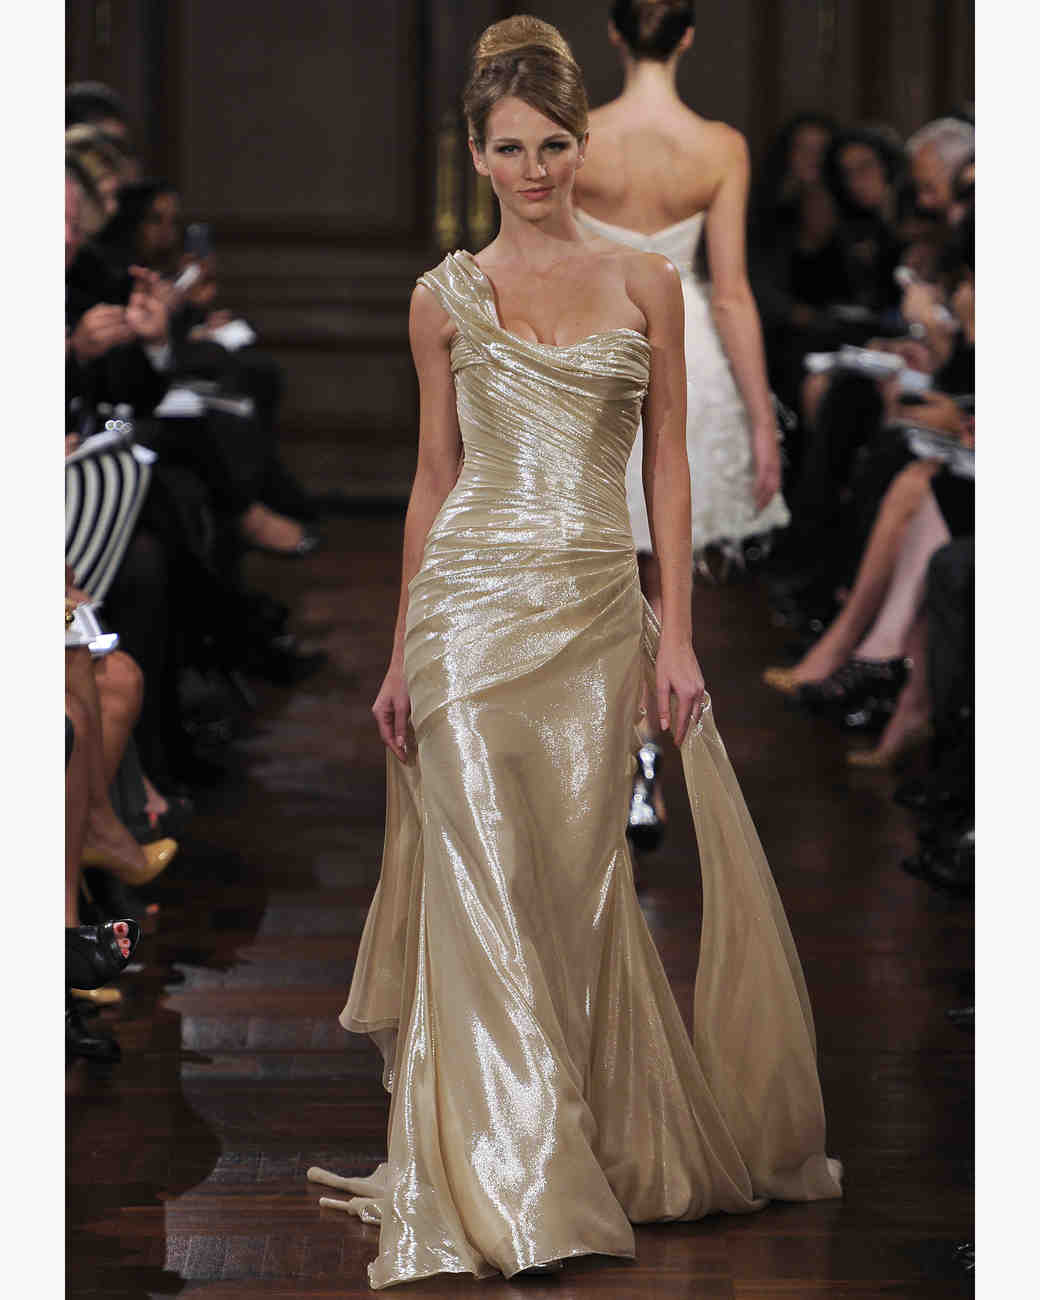 Dress Gowns For Weddings: Gold Wedding Dresses, Fall 2012 Bridal Fashion Week